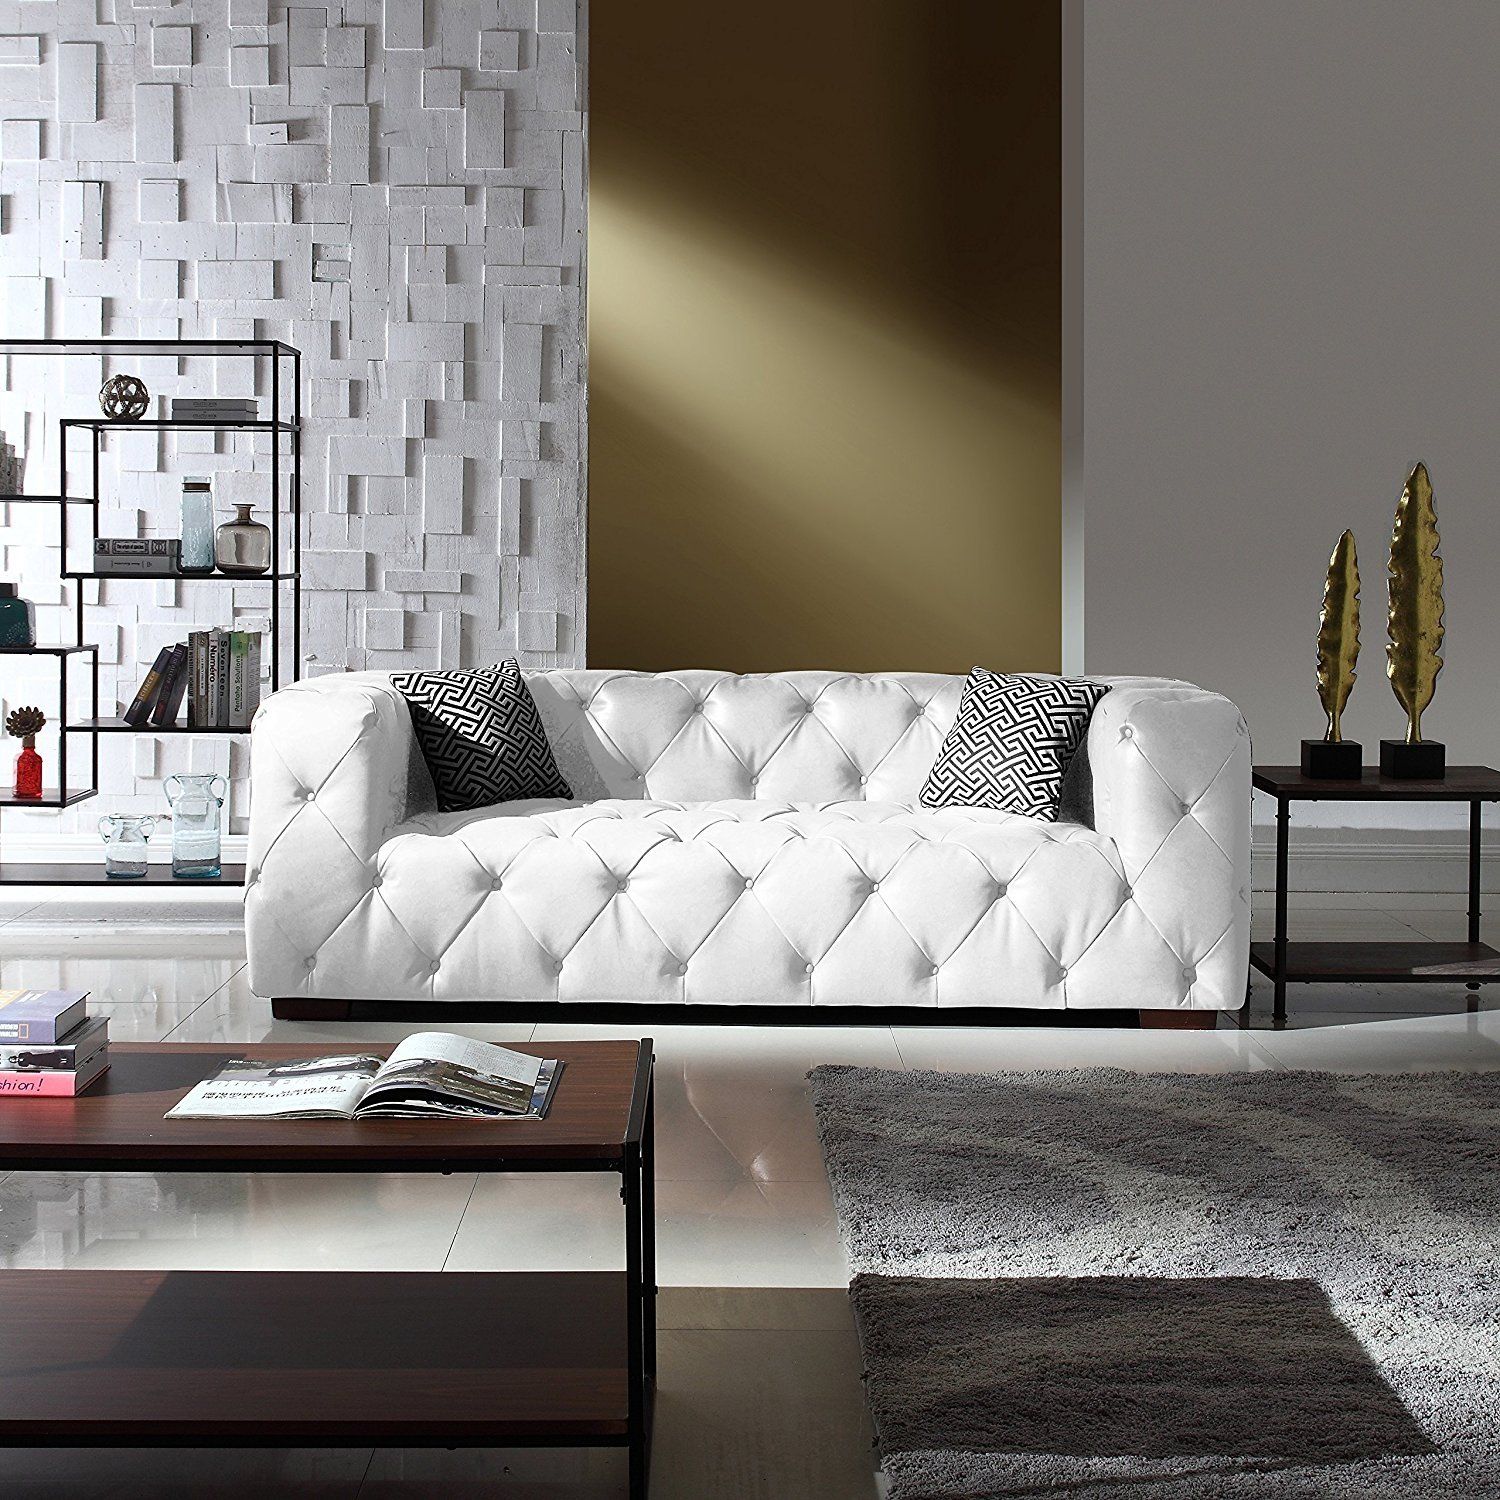 Large tufted real leather chesterfield sofa classic living room couch white walmart com